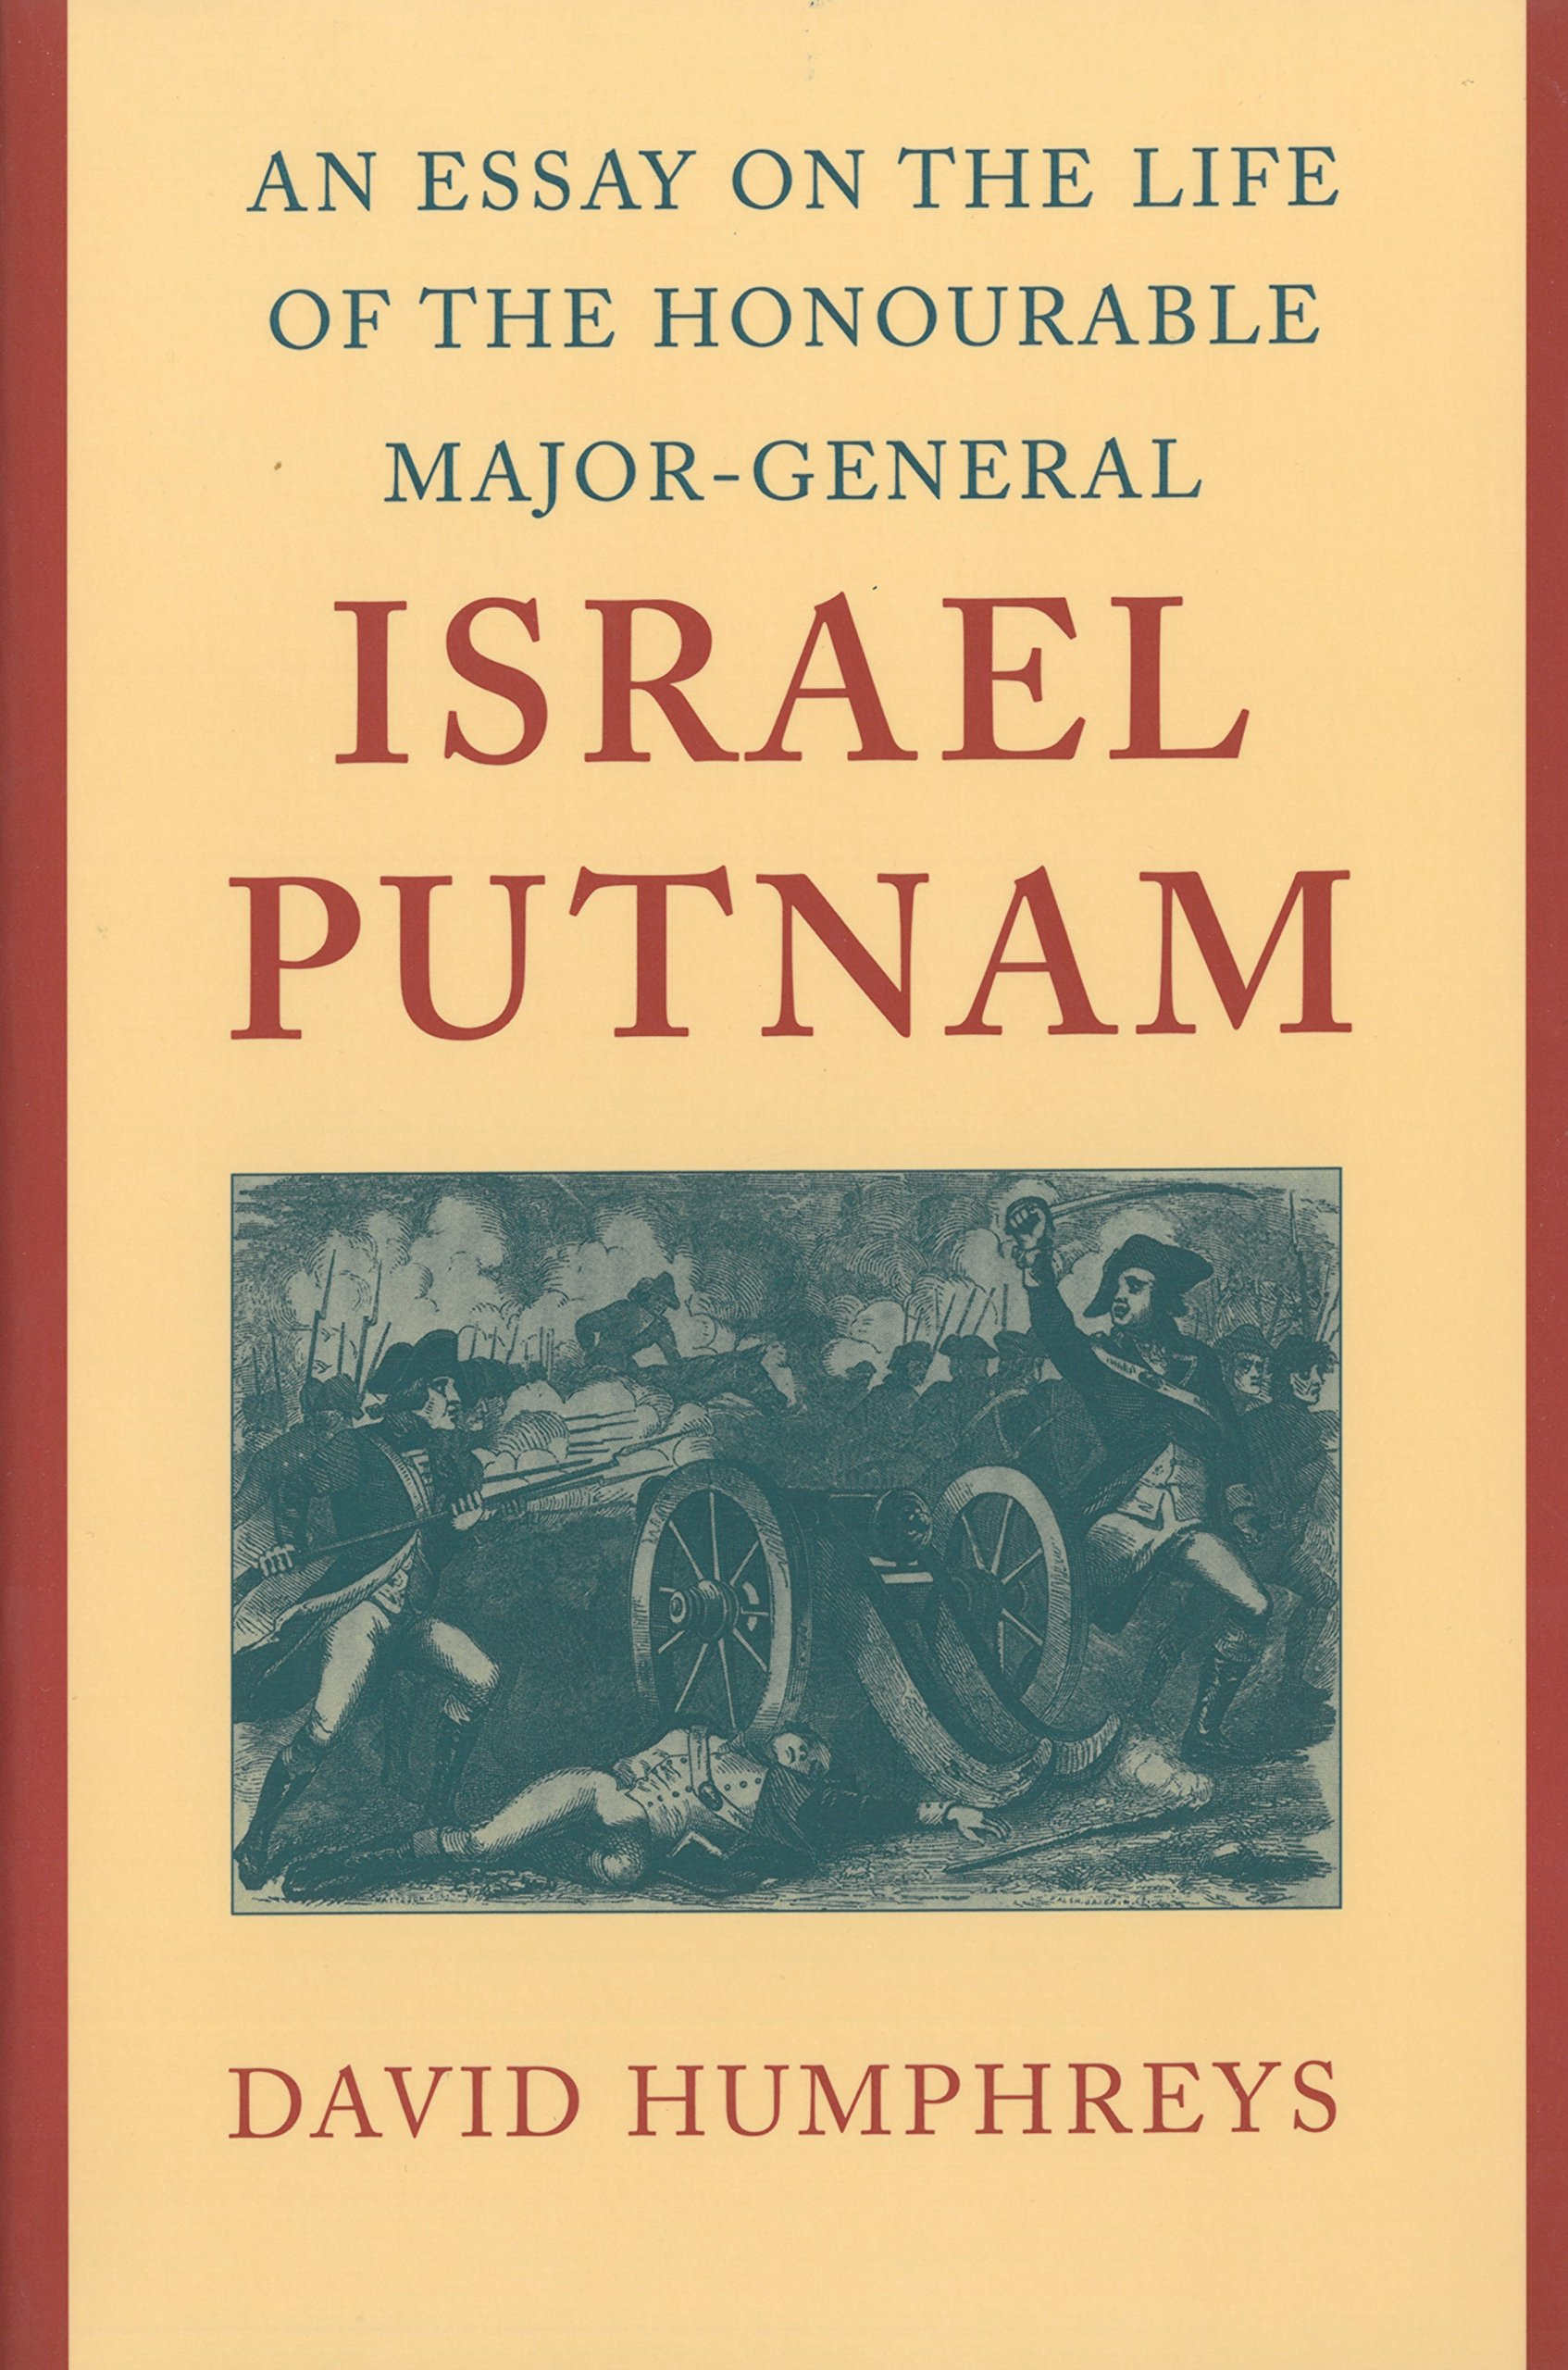 Essay on the Life of the Honourable Major-General Israel Putnam, An